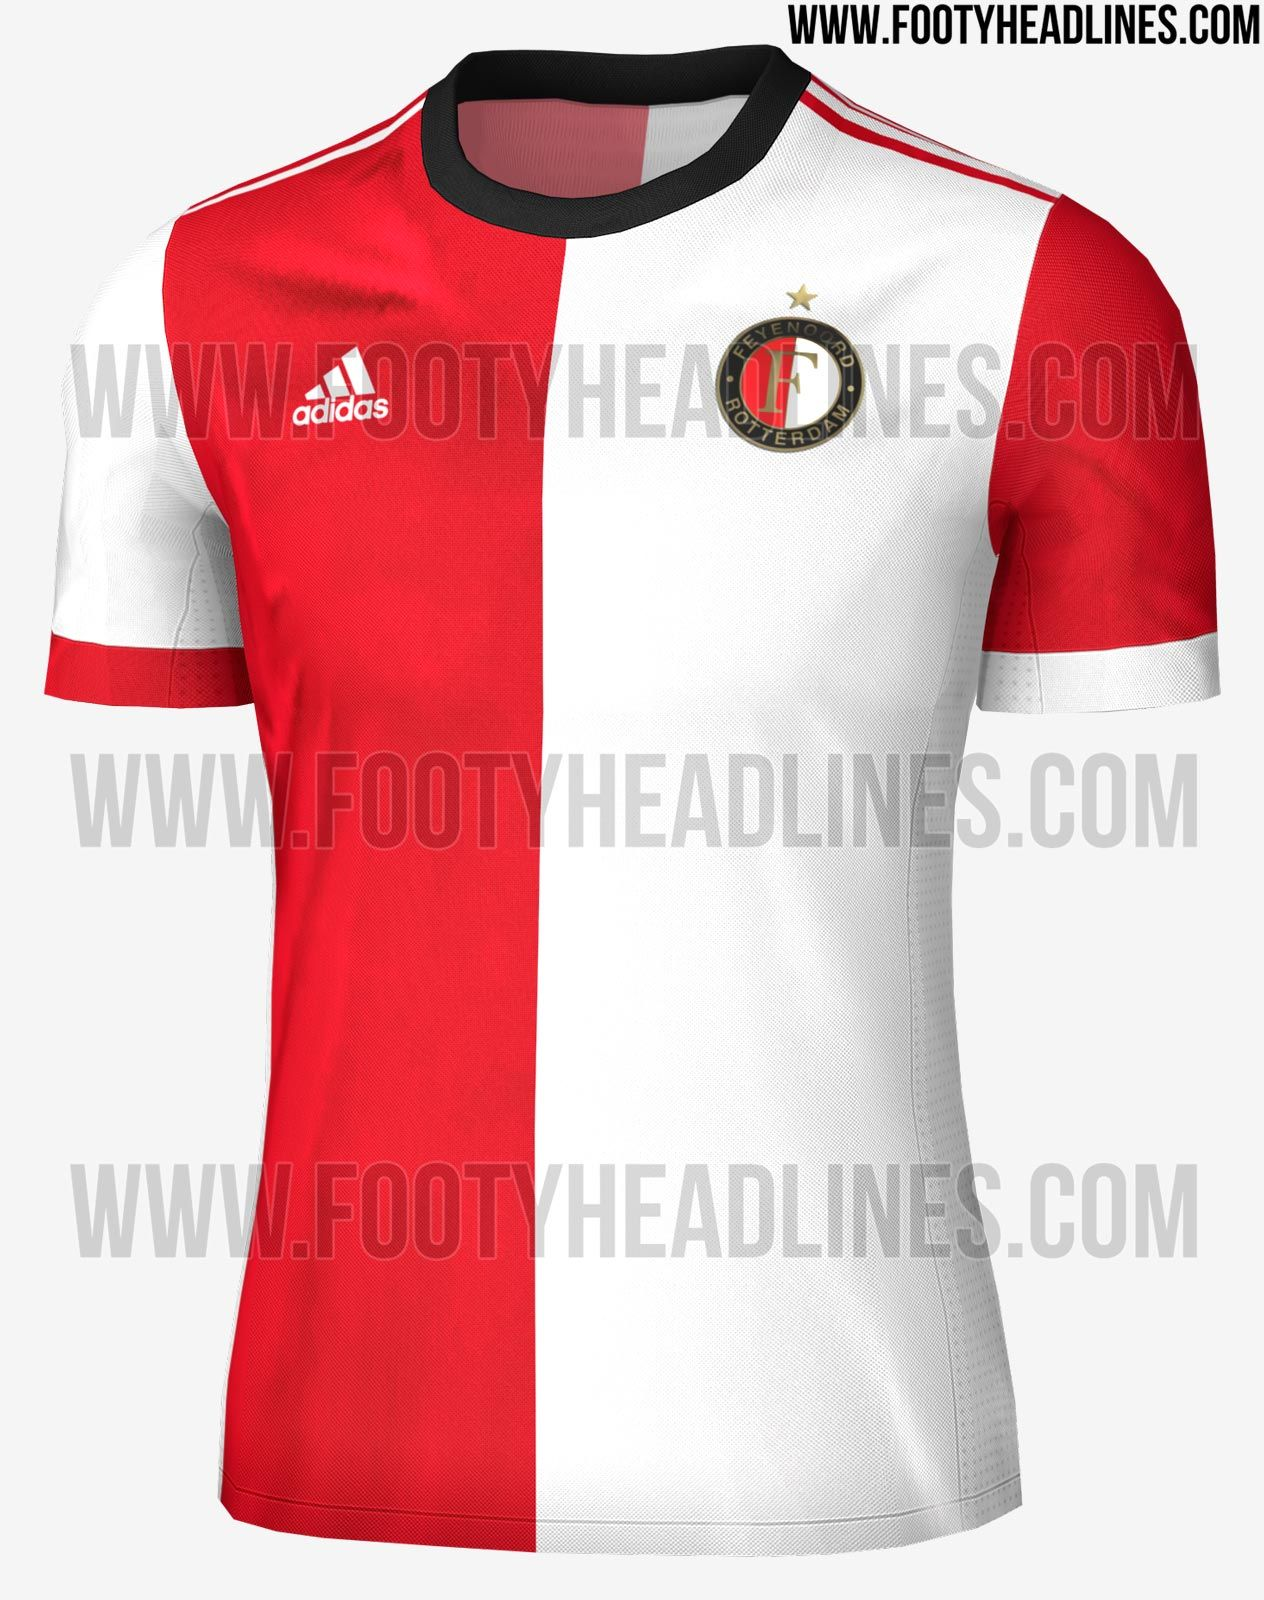 21de7352a08 The new Adidas Feyenoord 2017-2018 jerseys introduce unique designs ...